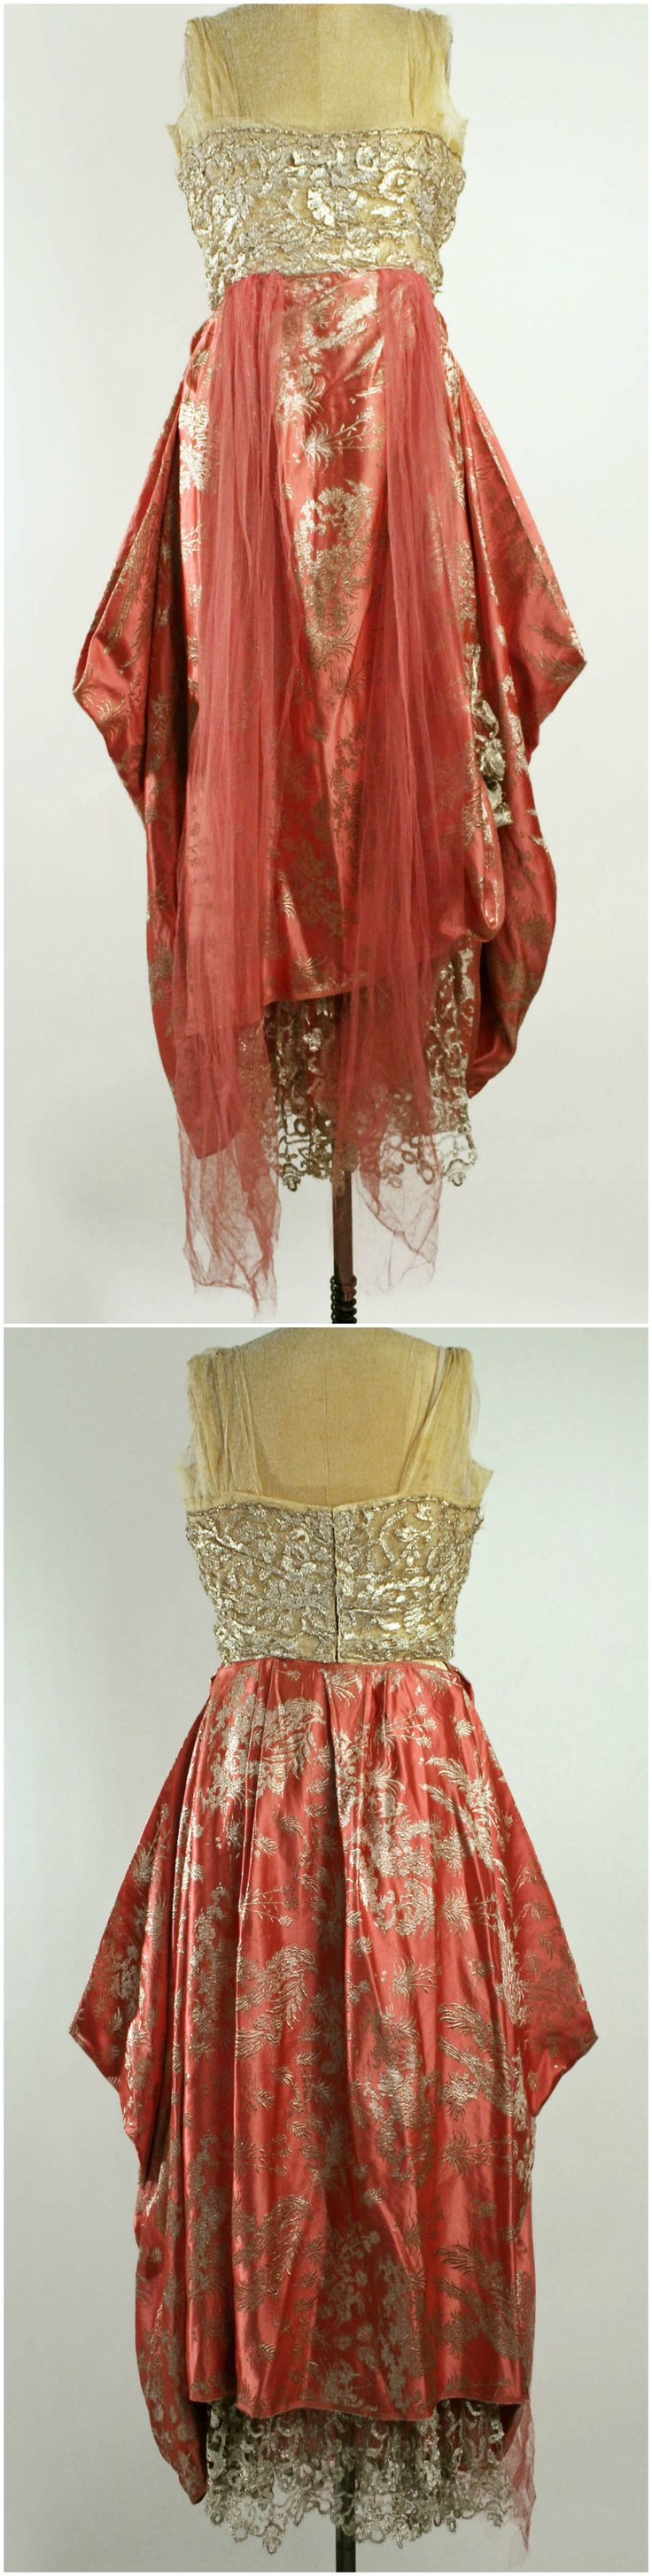 Evening dress by callot soeurs 1915 16 at the for Metropolitan museum of art fashion